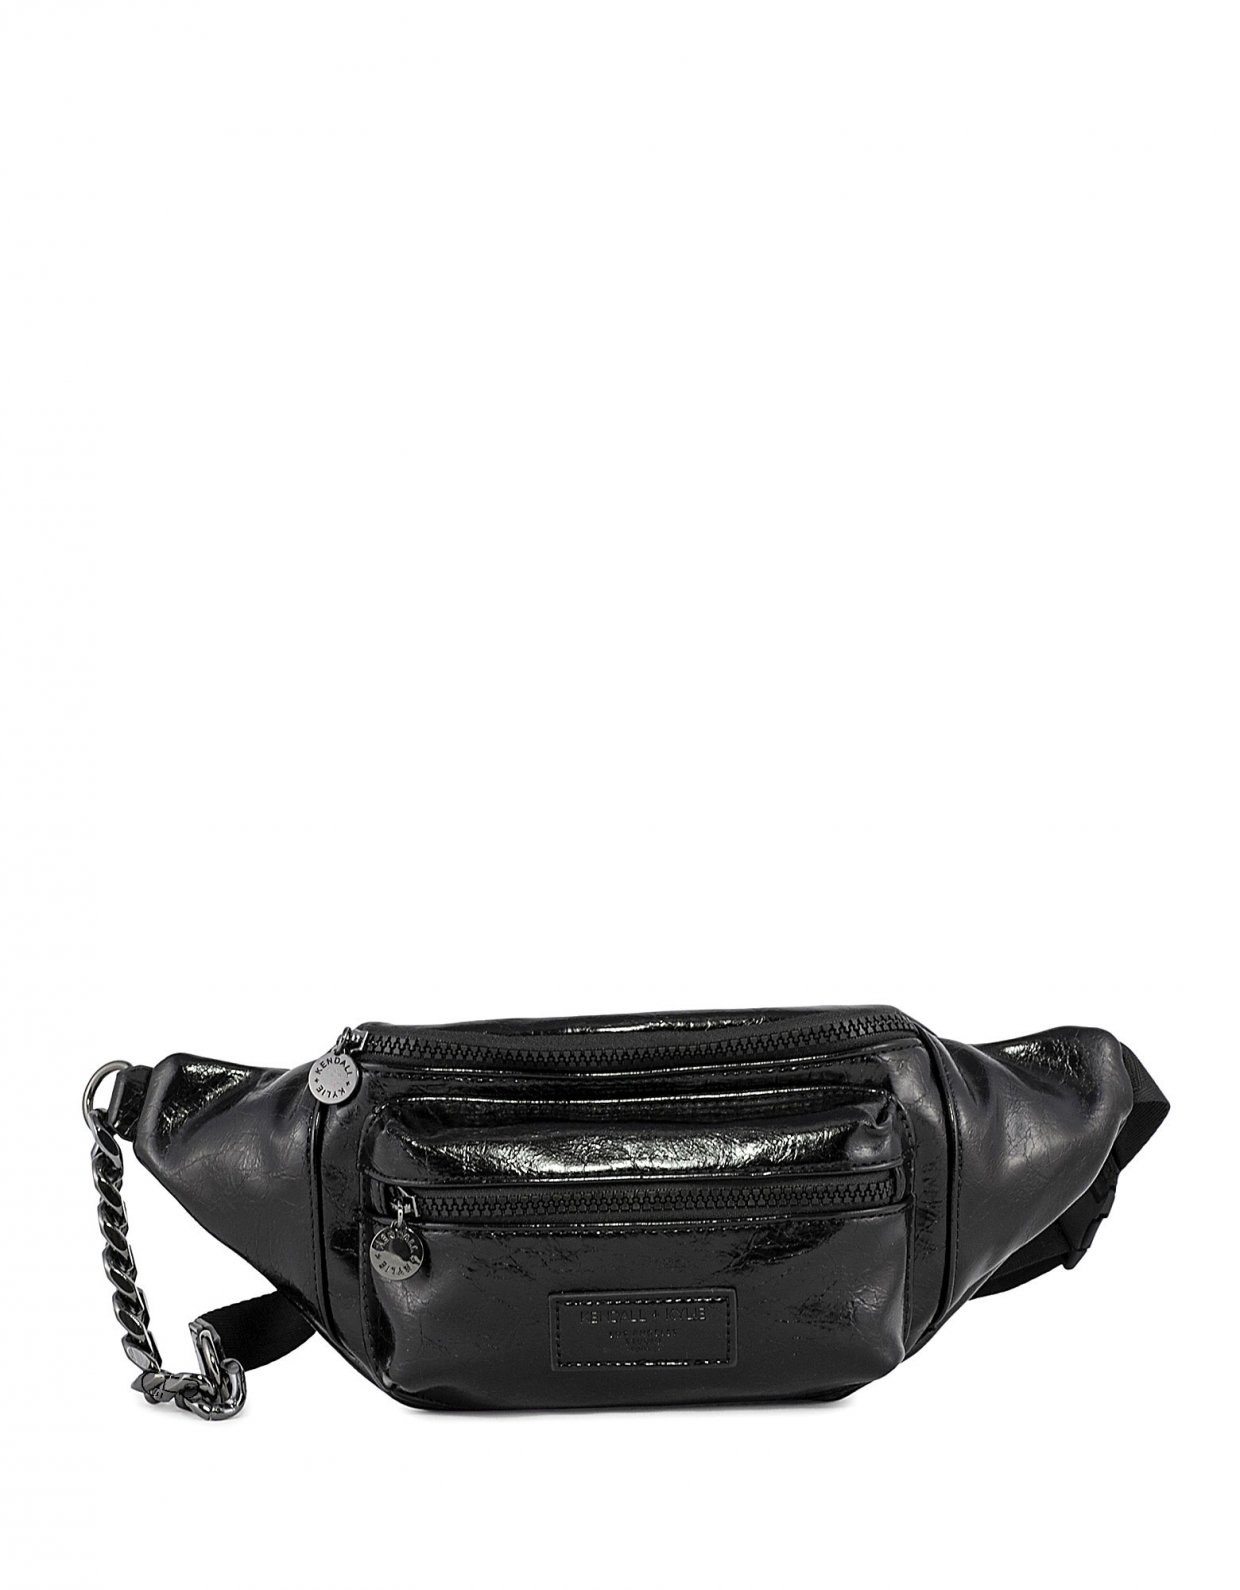 Kendall + Kylie Michelle fanny pack crinkled black